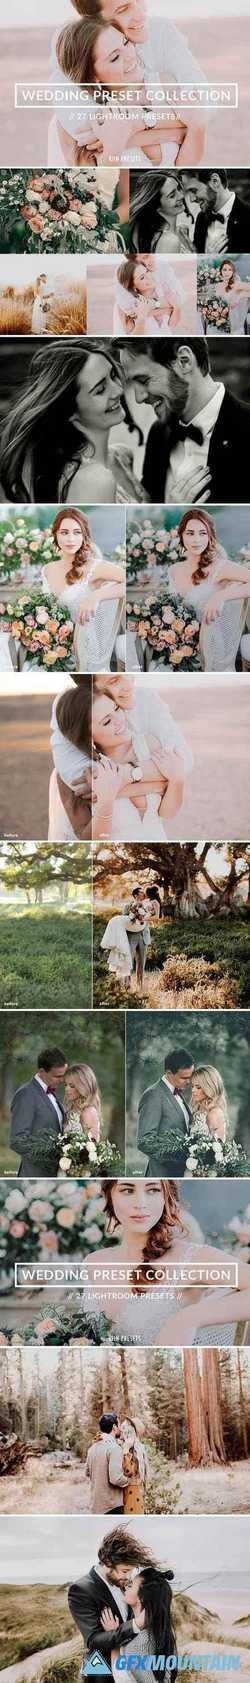 WEDDING LIGHTROOM PRESET COLLECTION 2358289